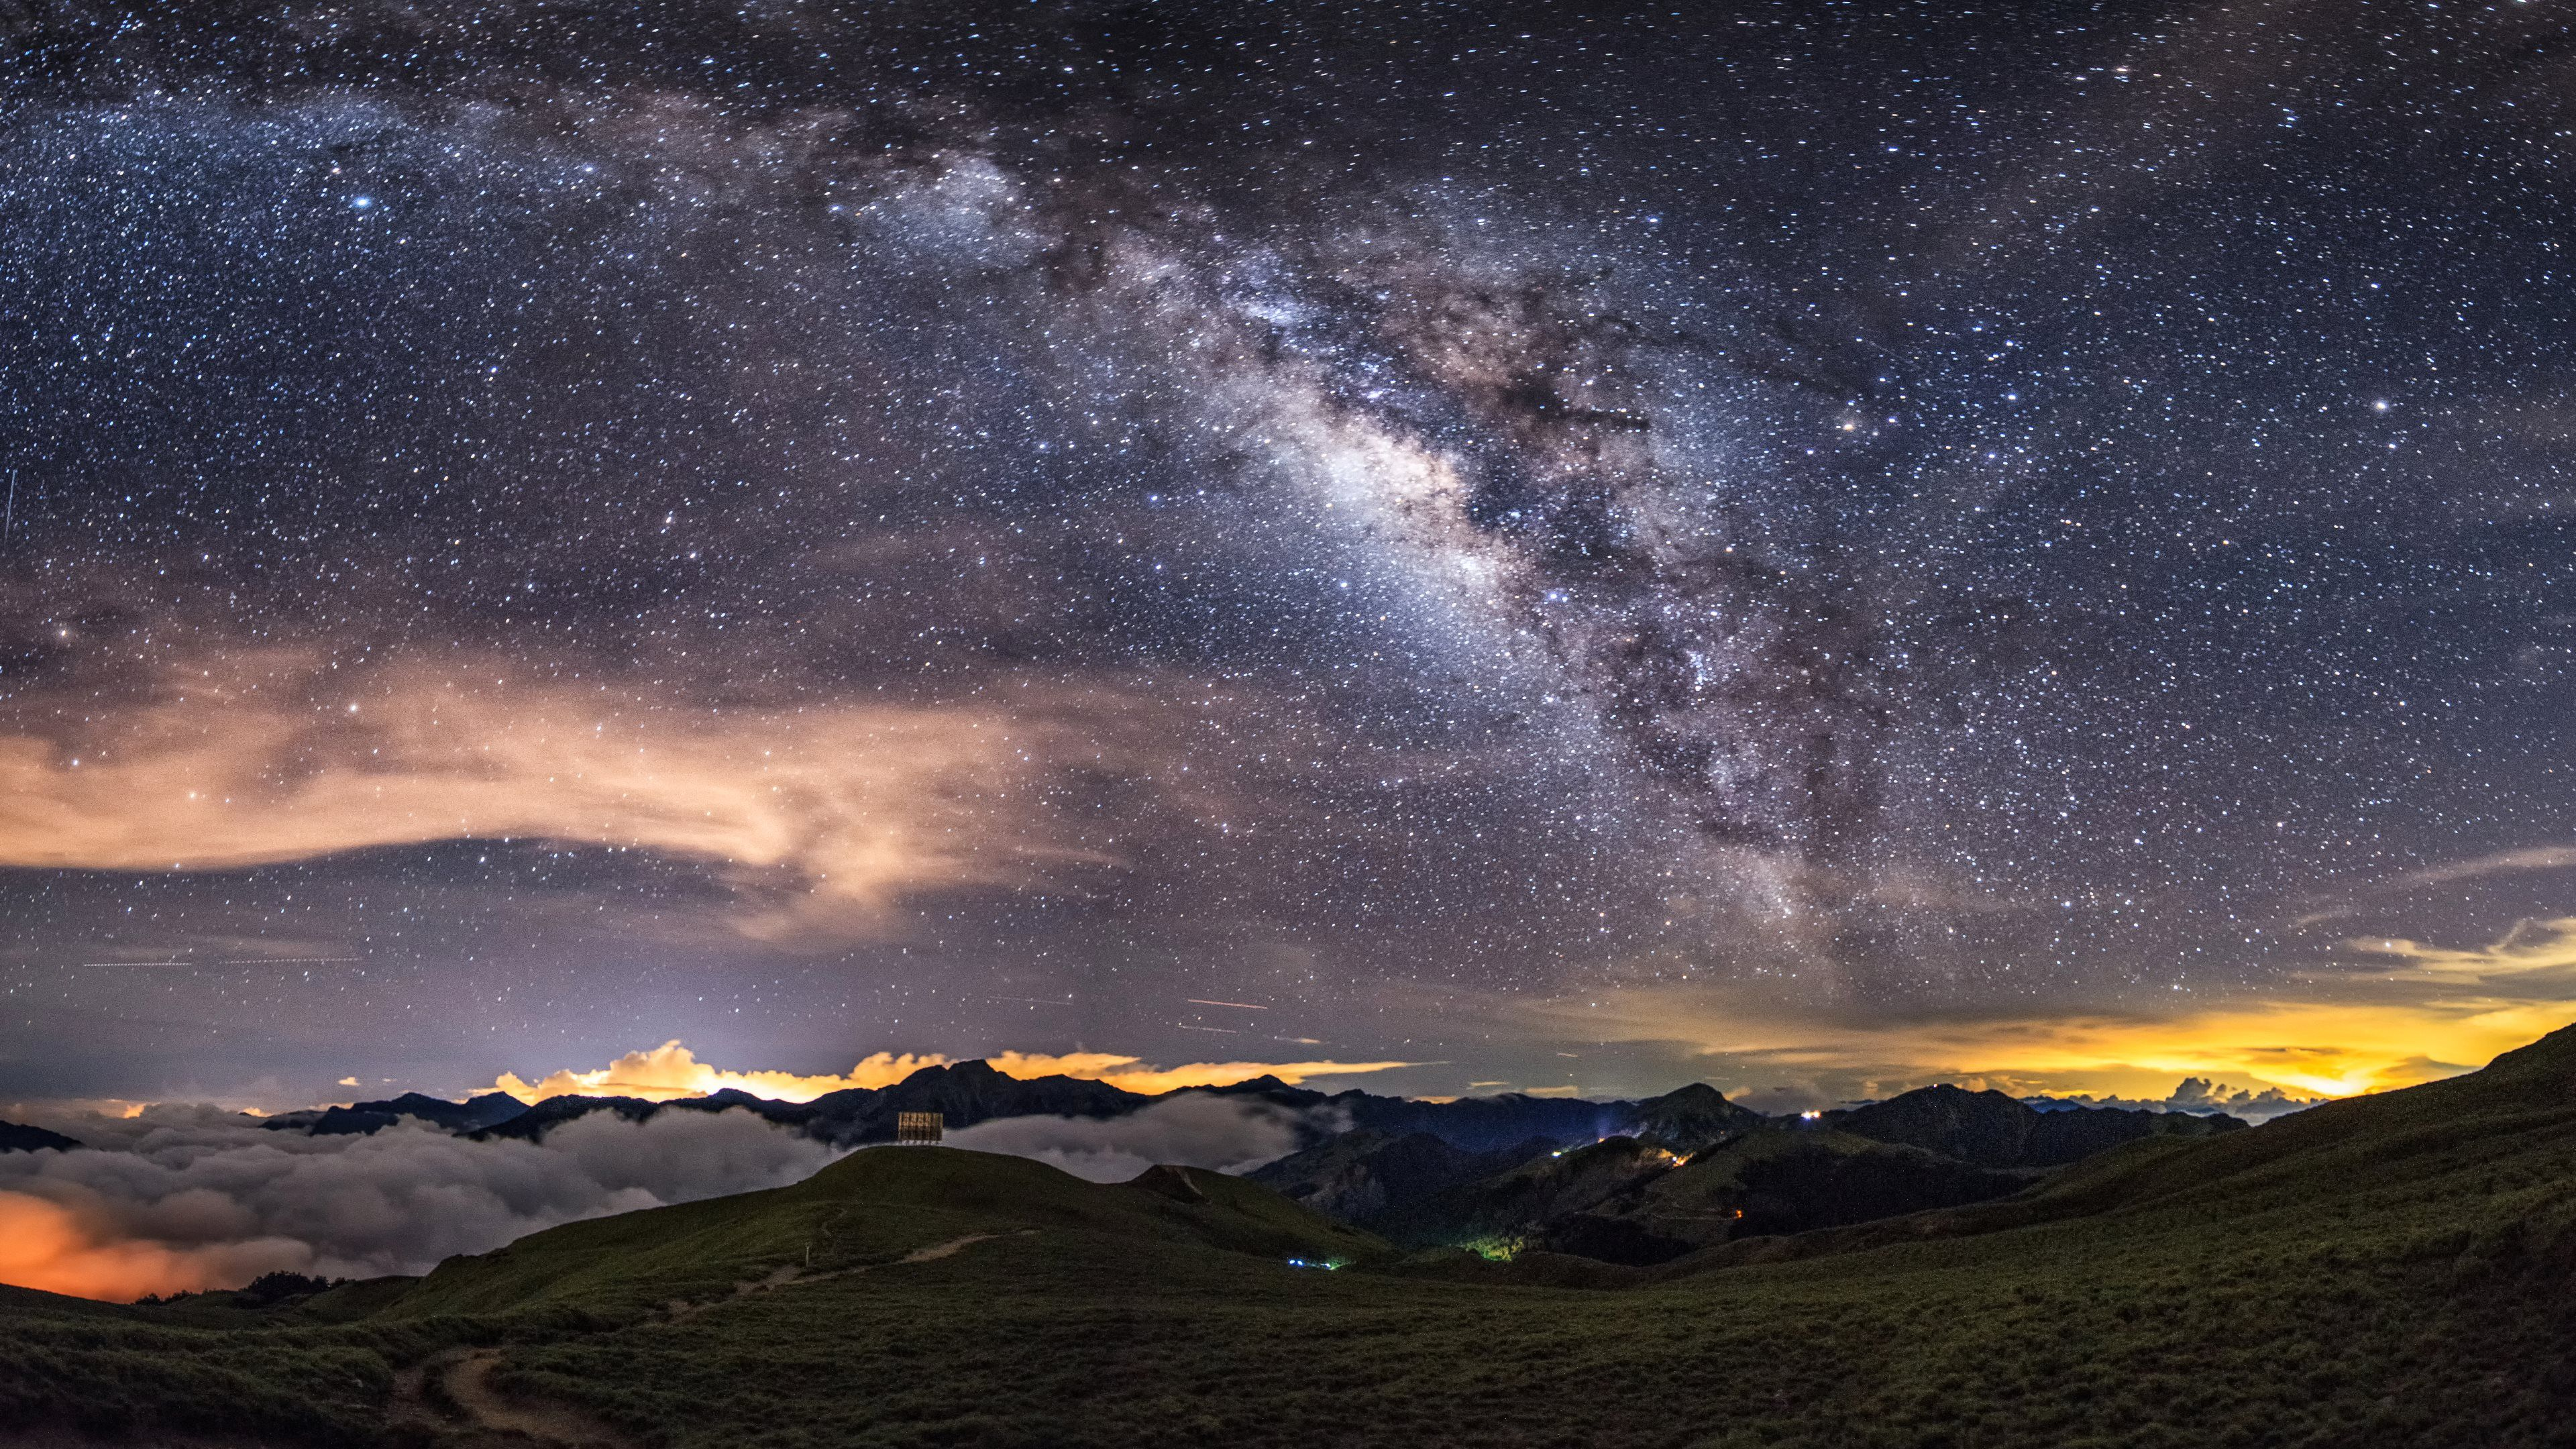 Amazing Milky Way Wallpapers: Great Milky Way Wallpaper Ultra HD High Resolution